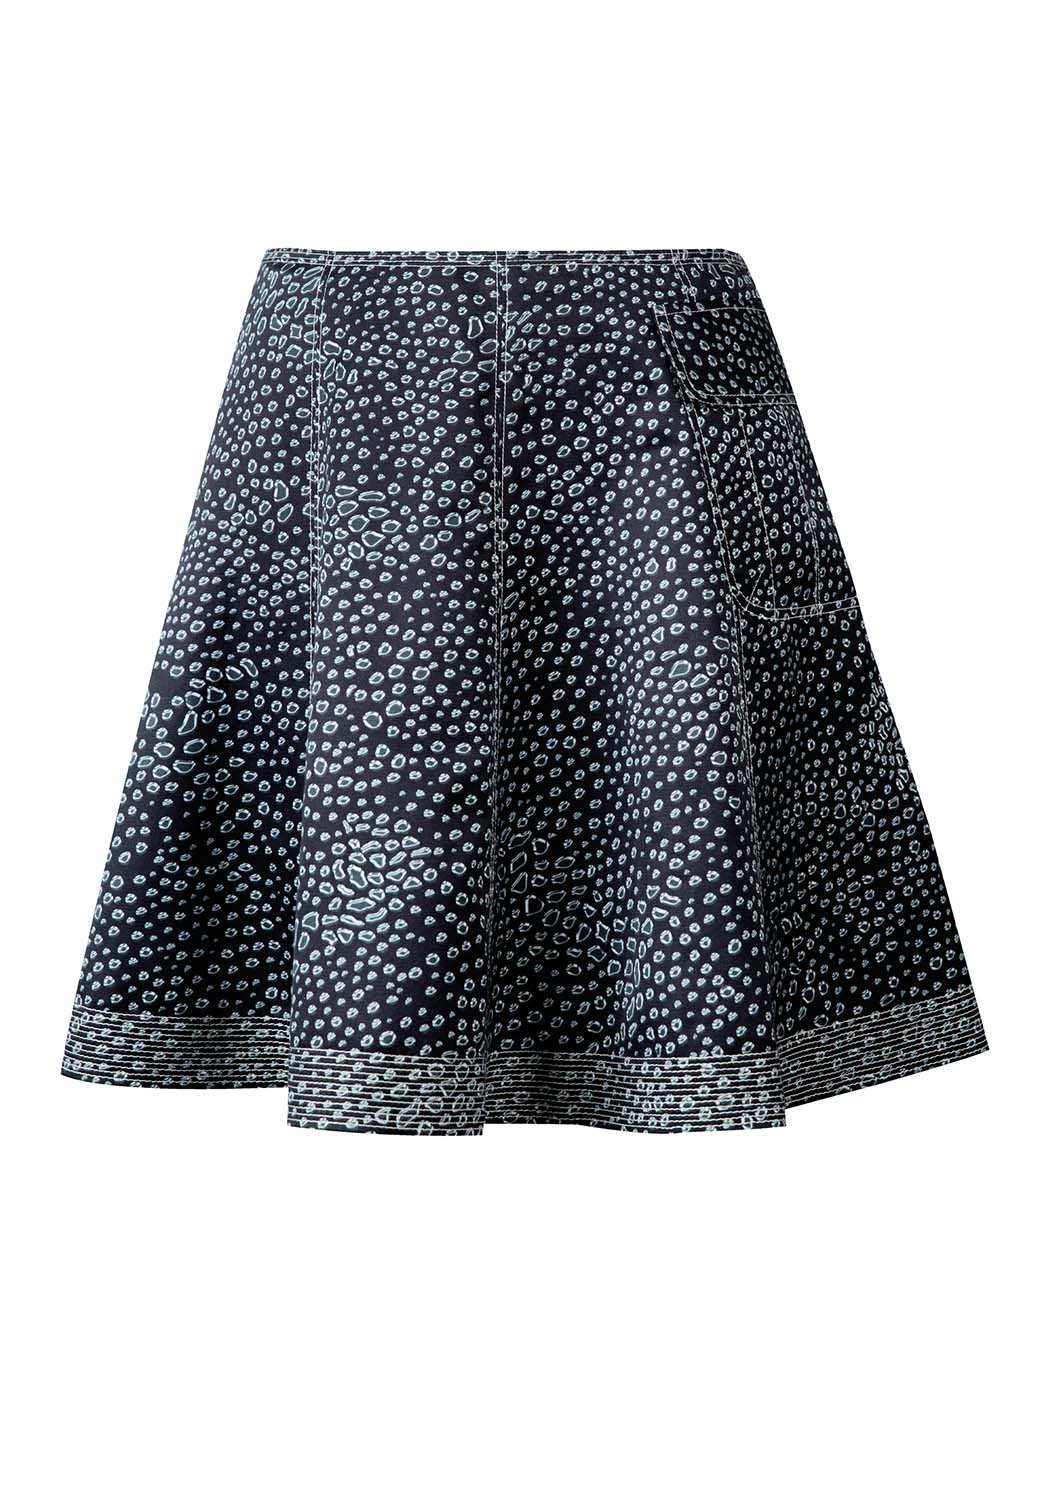 Drops Mini Skirt